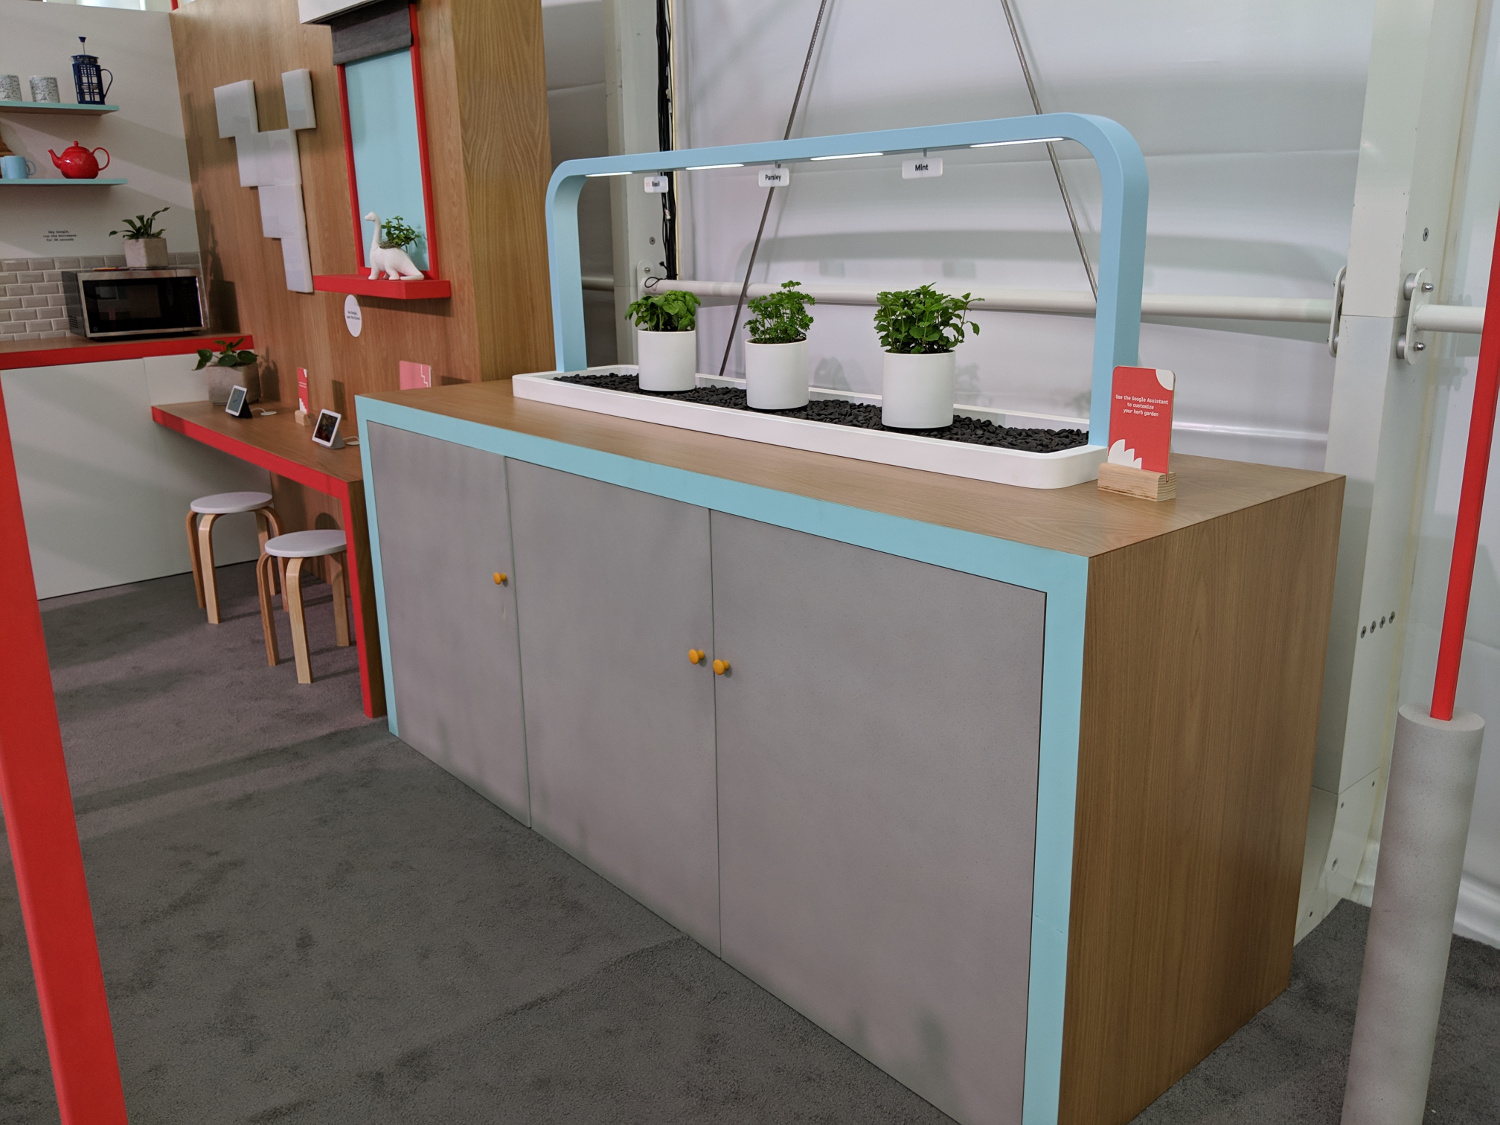 The Smart Herb Garden was created for Google I/O 2019 – here it is on displaythere!